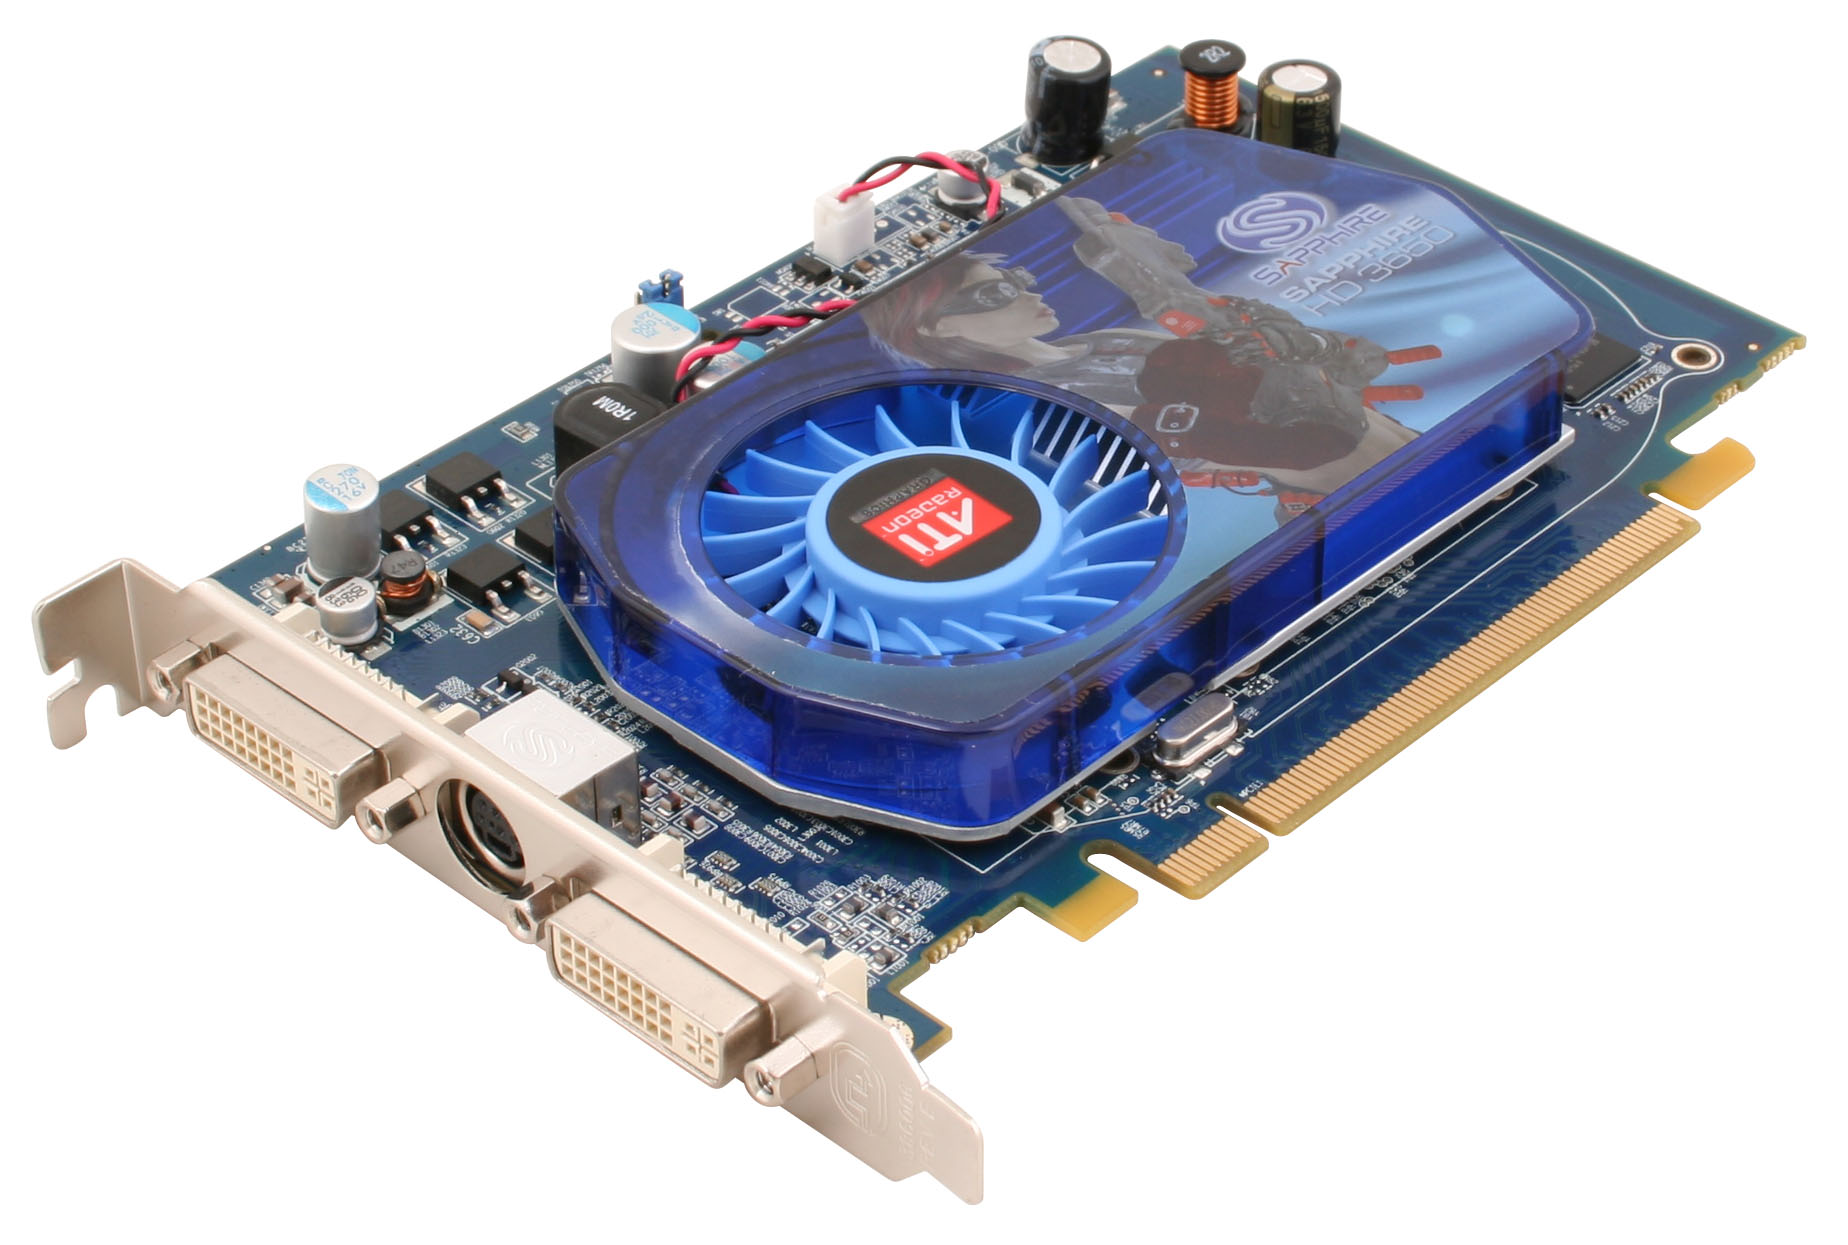 10 best graphics cards for your modern PC